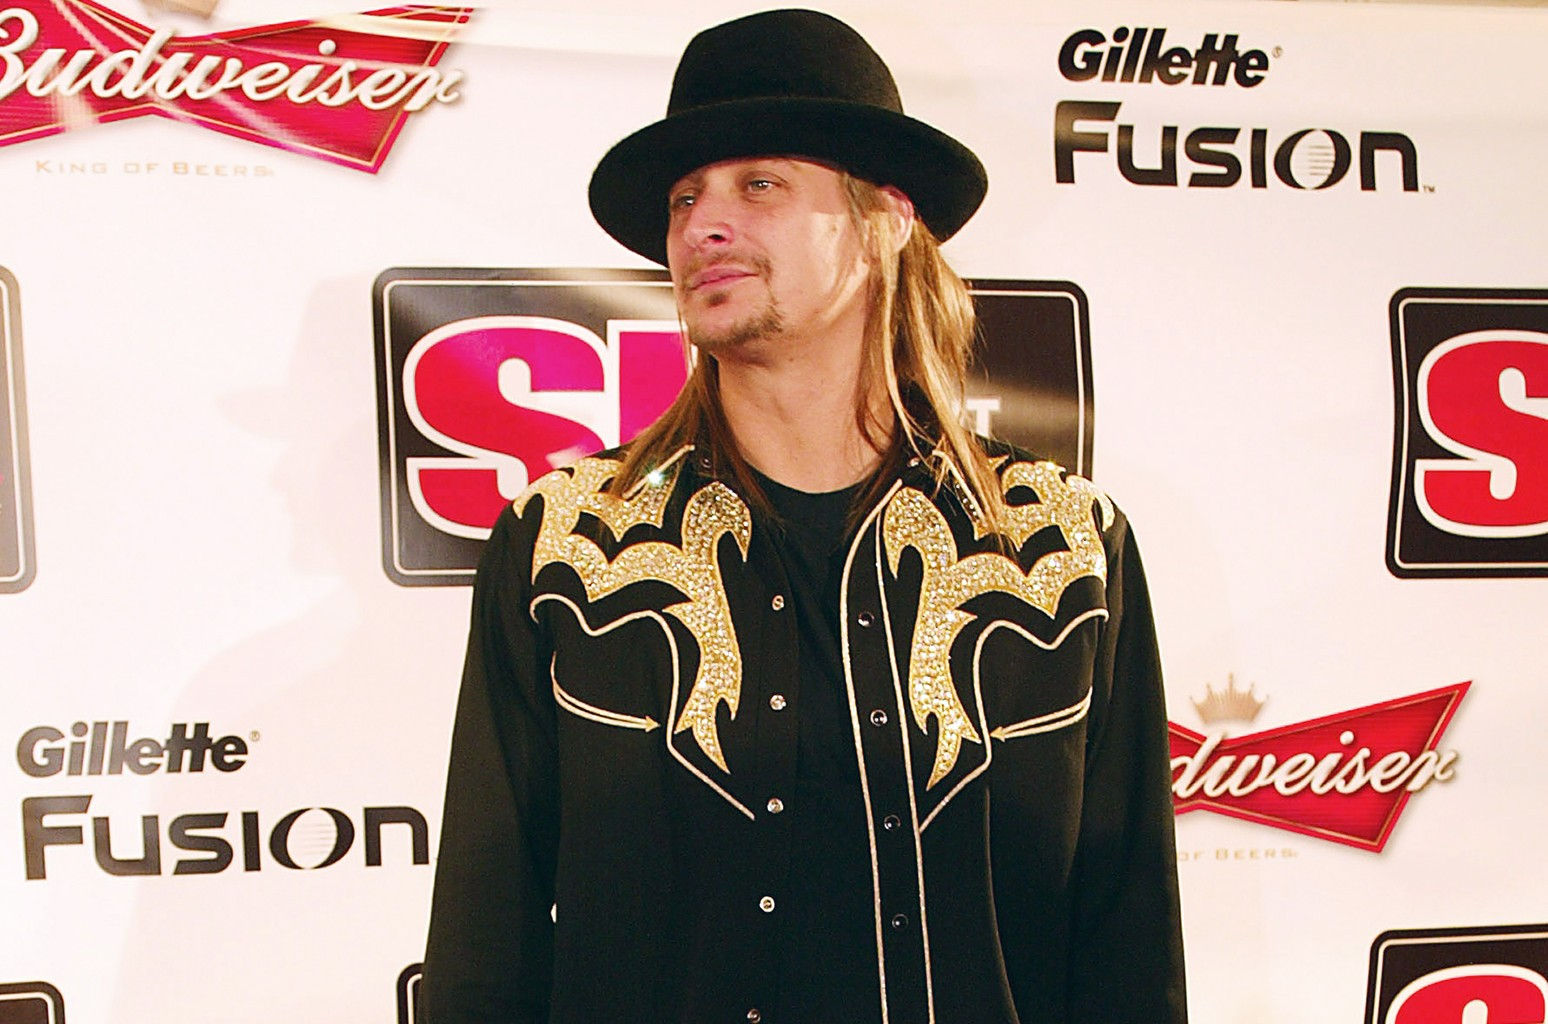 Kid Rock attends the Super Bowl XL Sports Illustrated Swimsuit Party on Feb. 4, 2006 in Detroit.